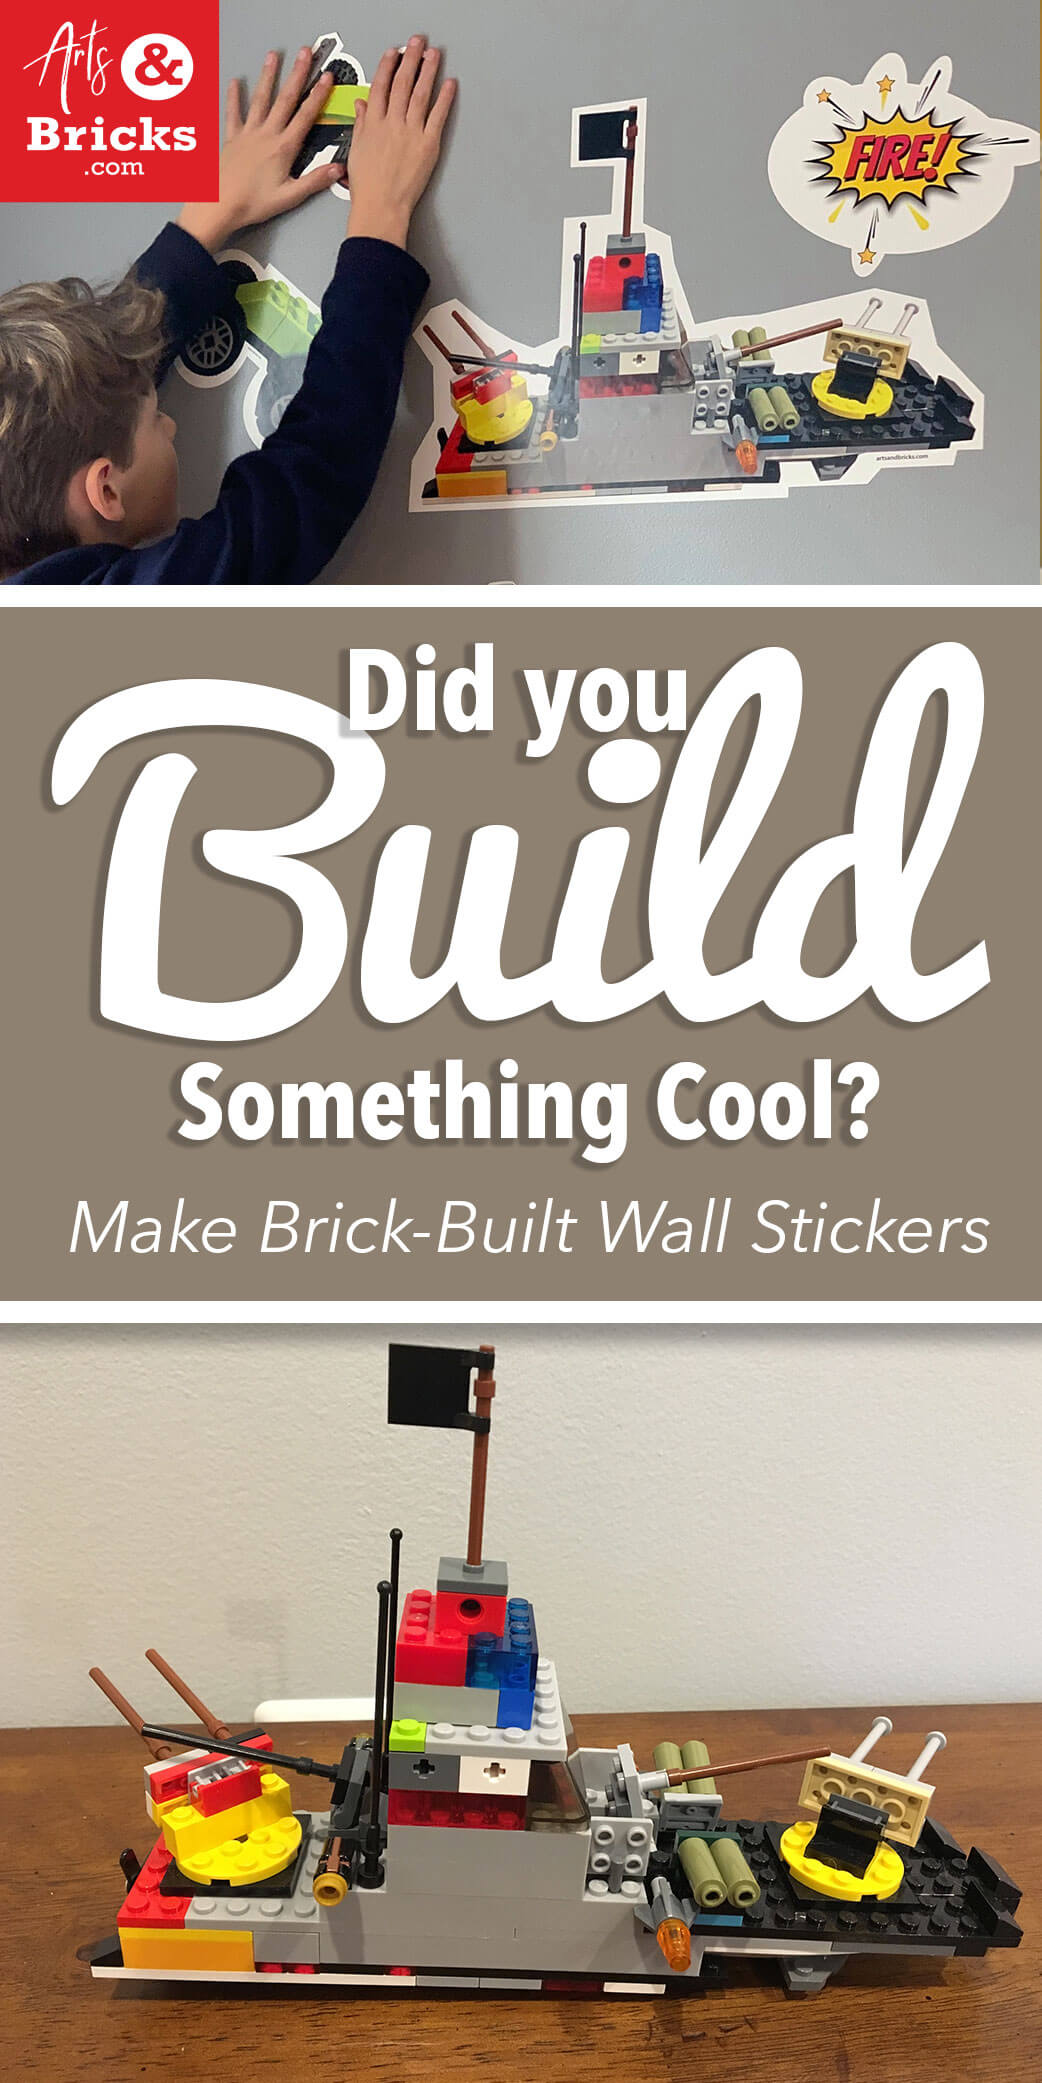 Did you build something one a kind?